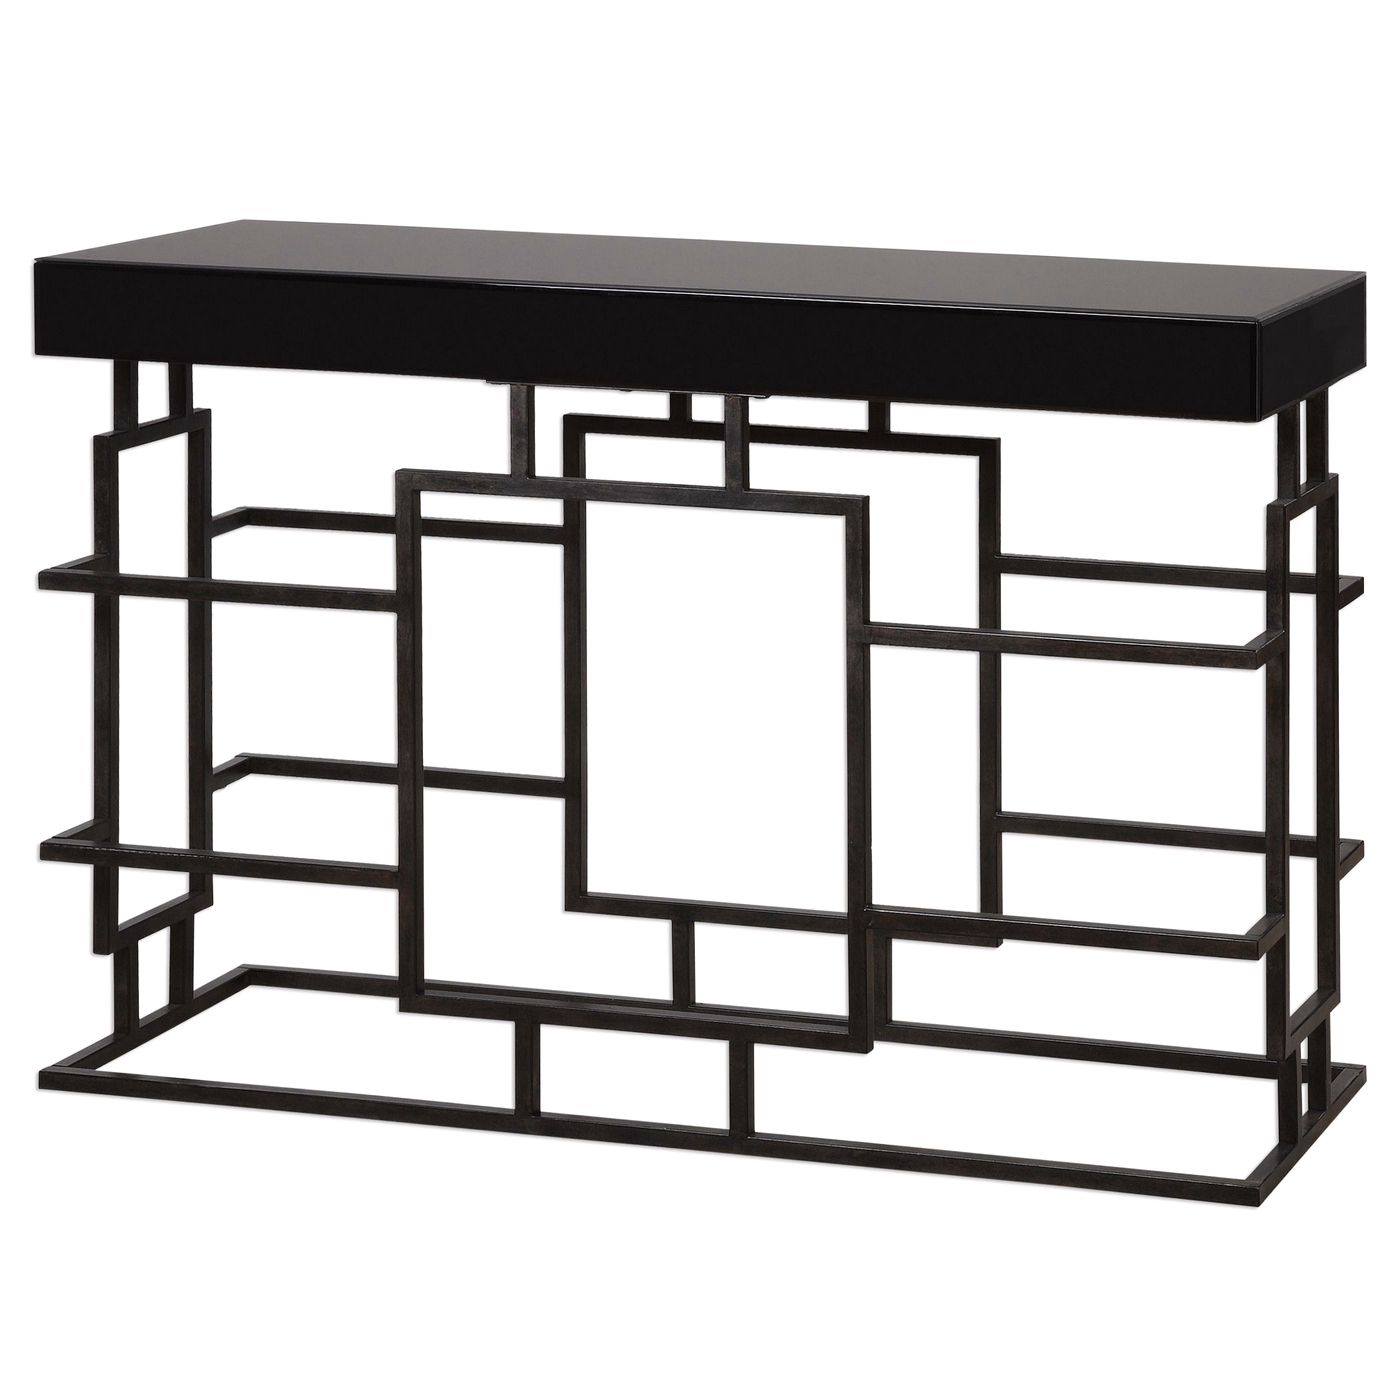 Console Tables With Picture Frames ~ Andy stylish black console table in geometric iron frame